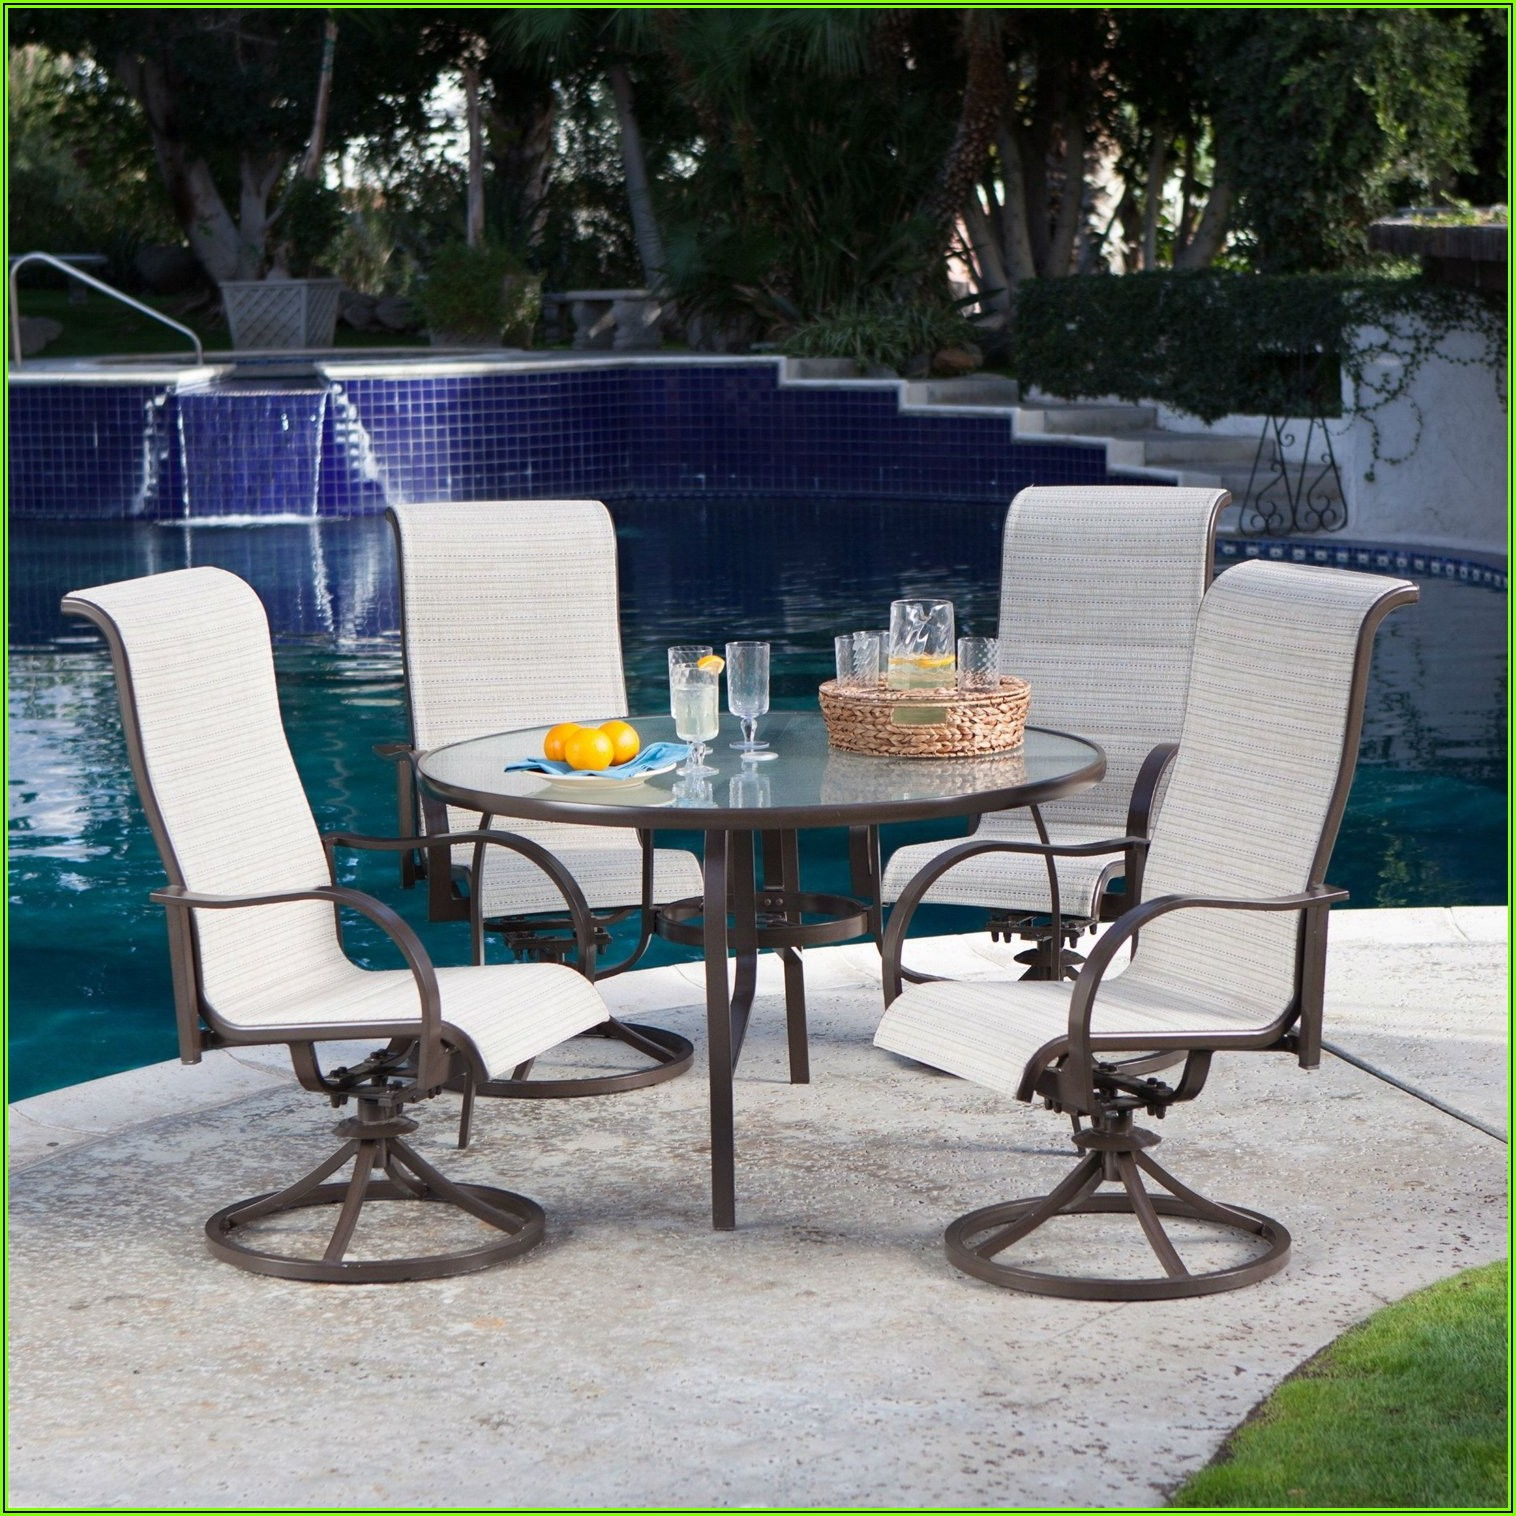 5 Piece Padded Sling Patio Dining Set